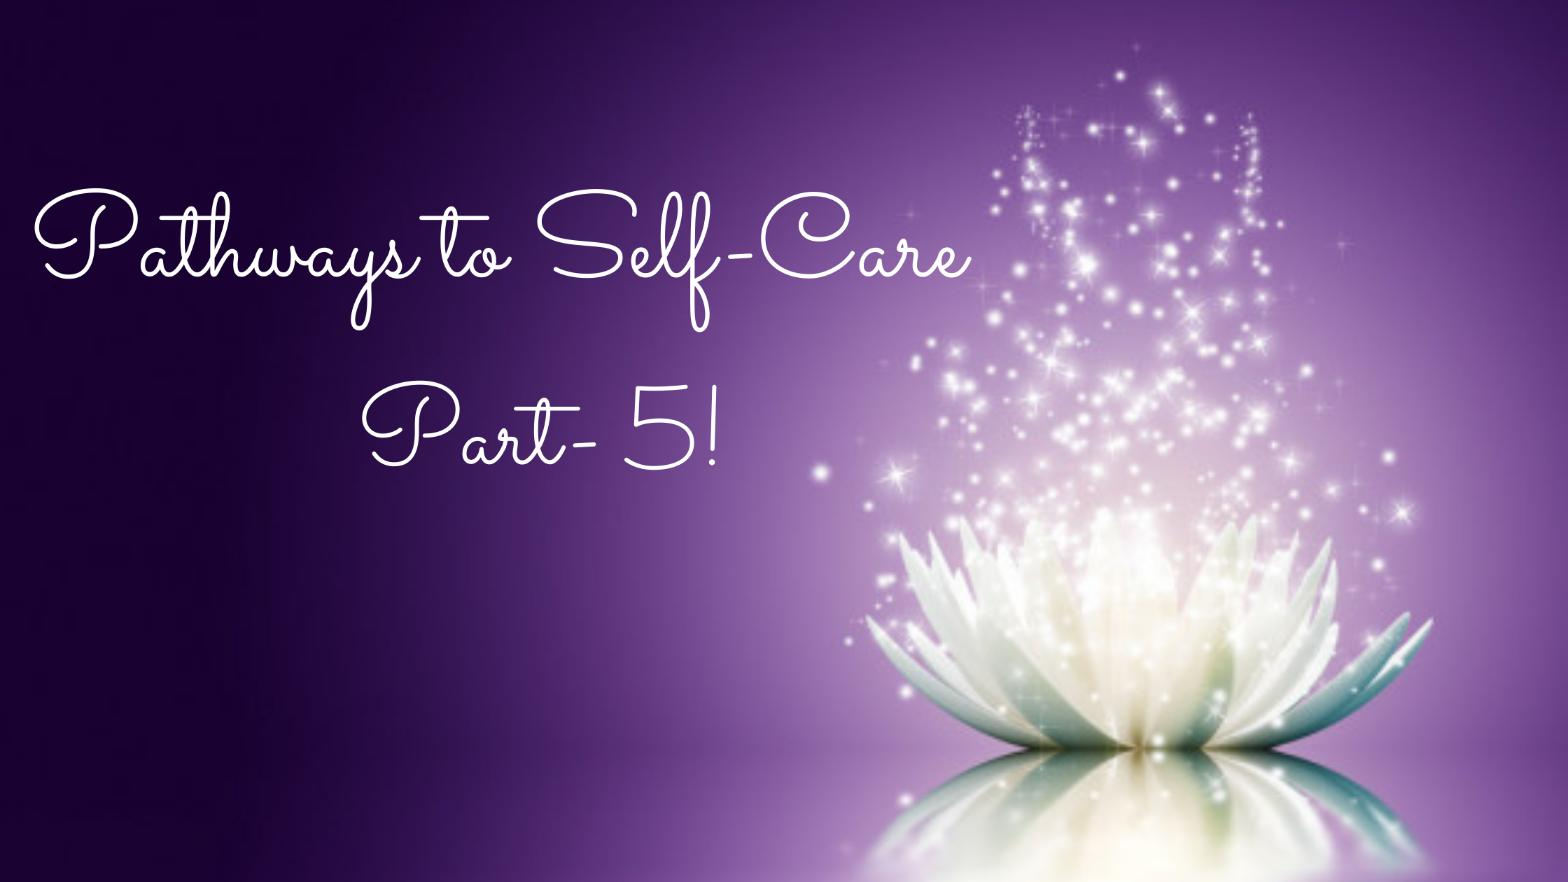 pathways to self care